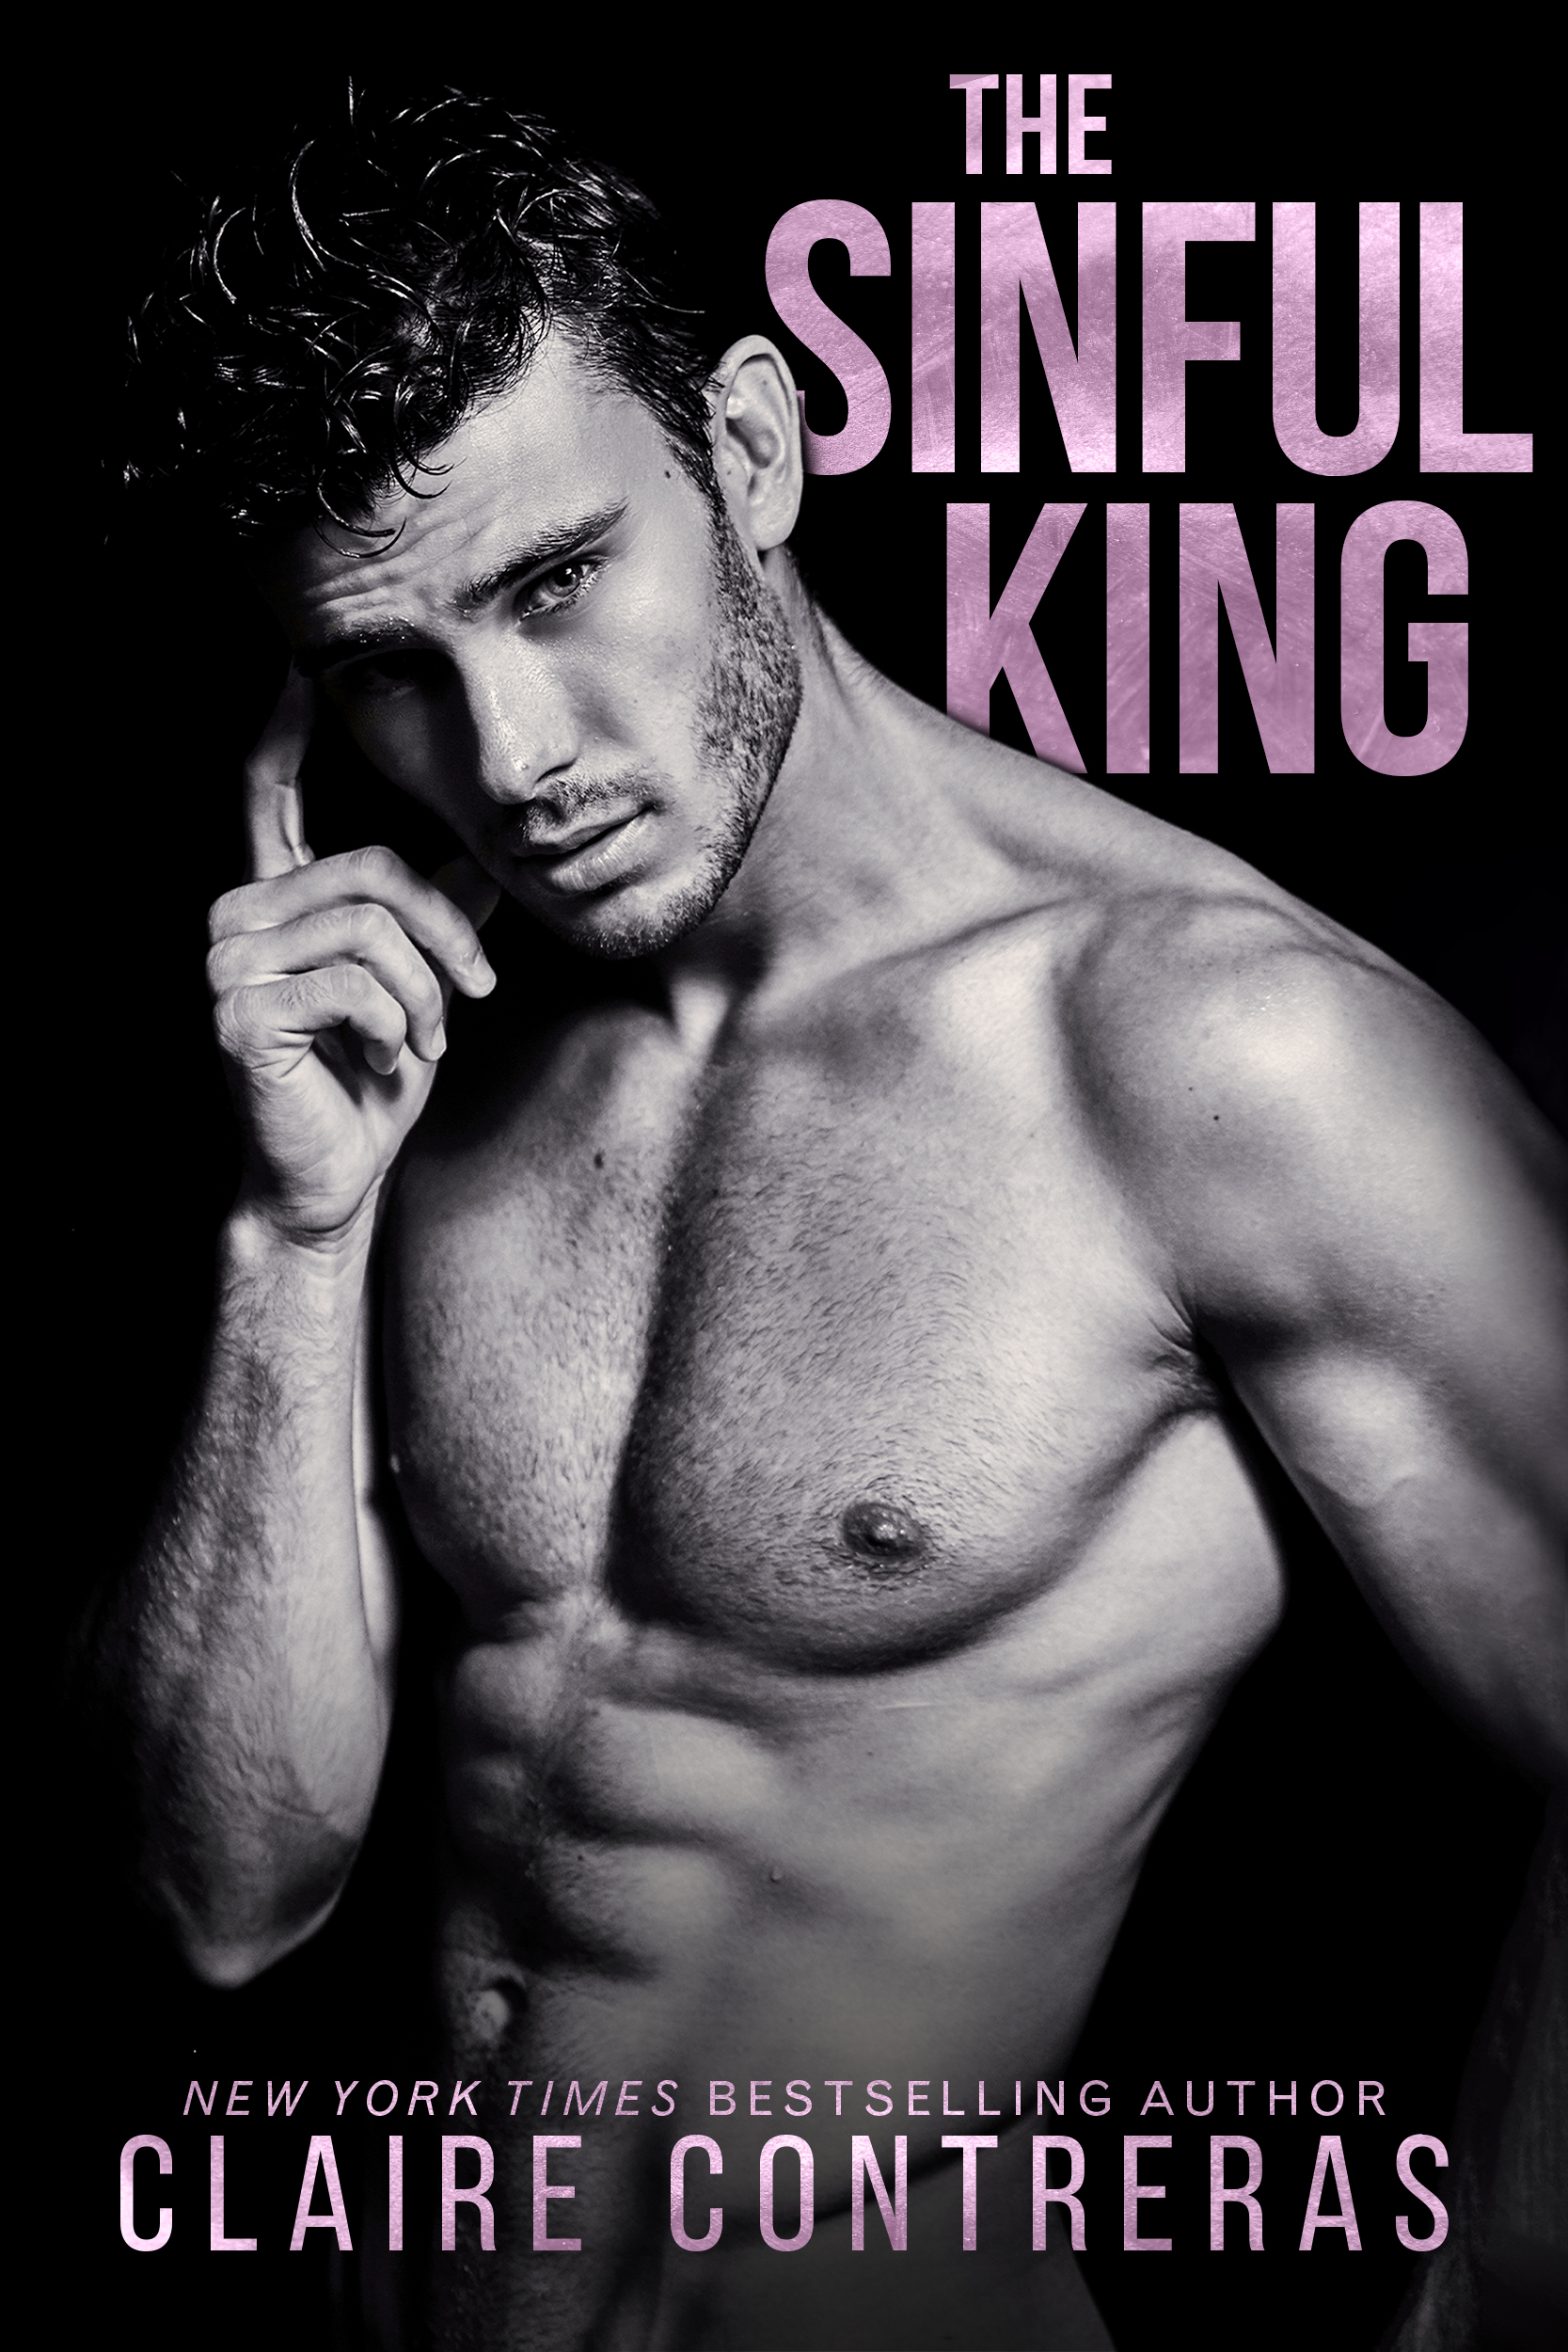 The Sinful KinG - Claire Contreras